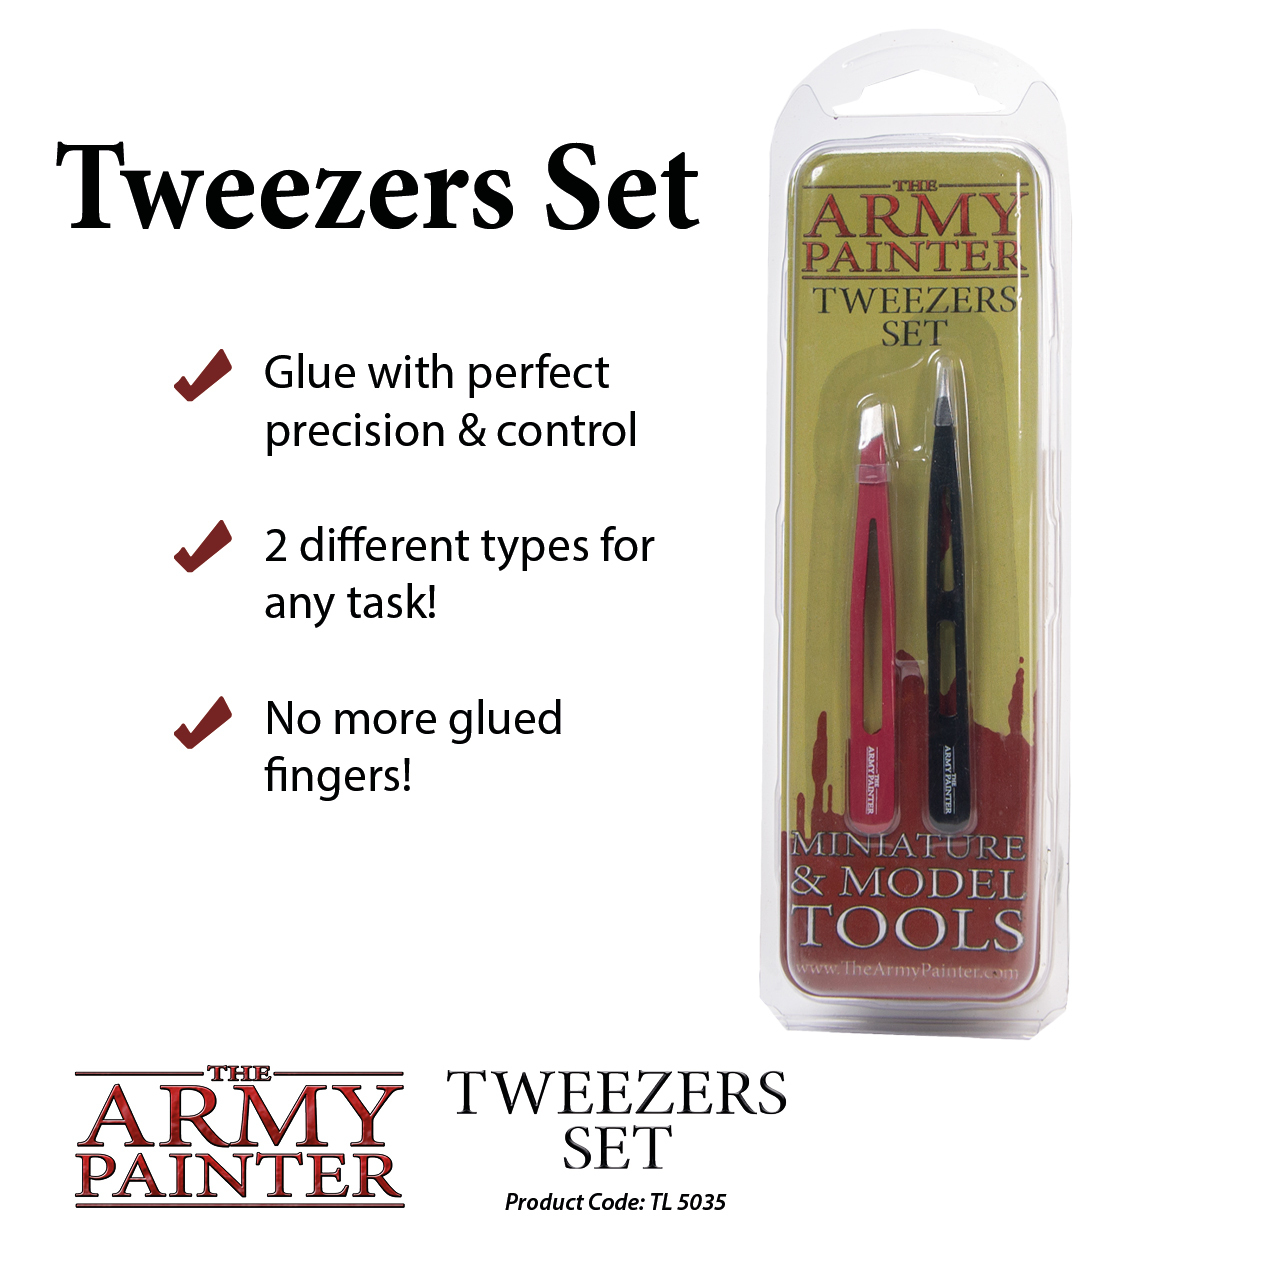 Army Painter Tweezers Set